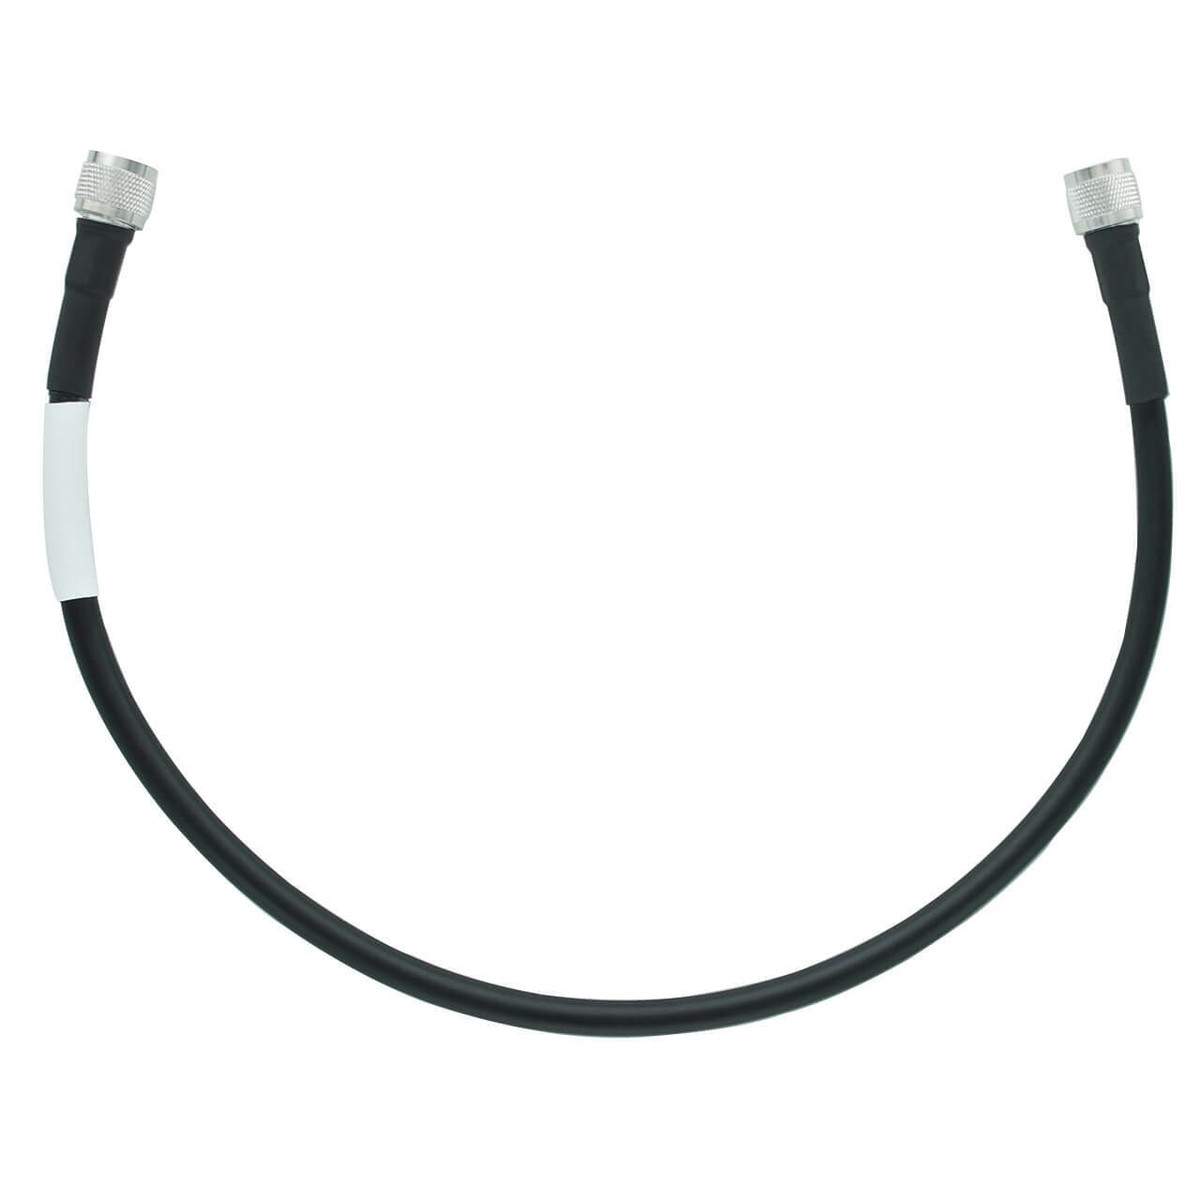 Bolton Technical N-Male to N-Male Bolton400 Ultra Low-Loss Coax Cable | 2 ft. Cable